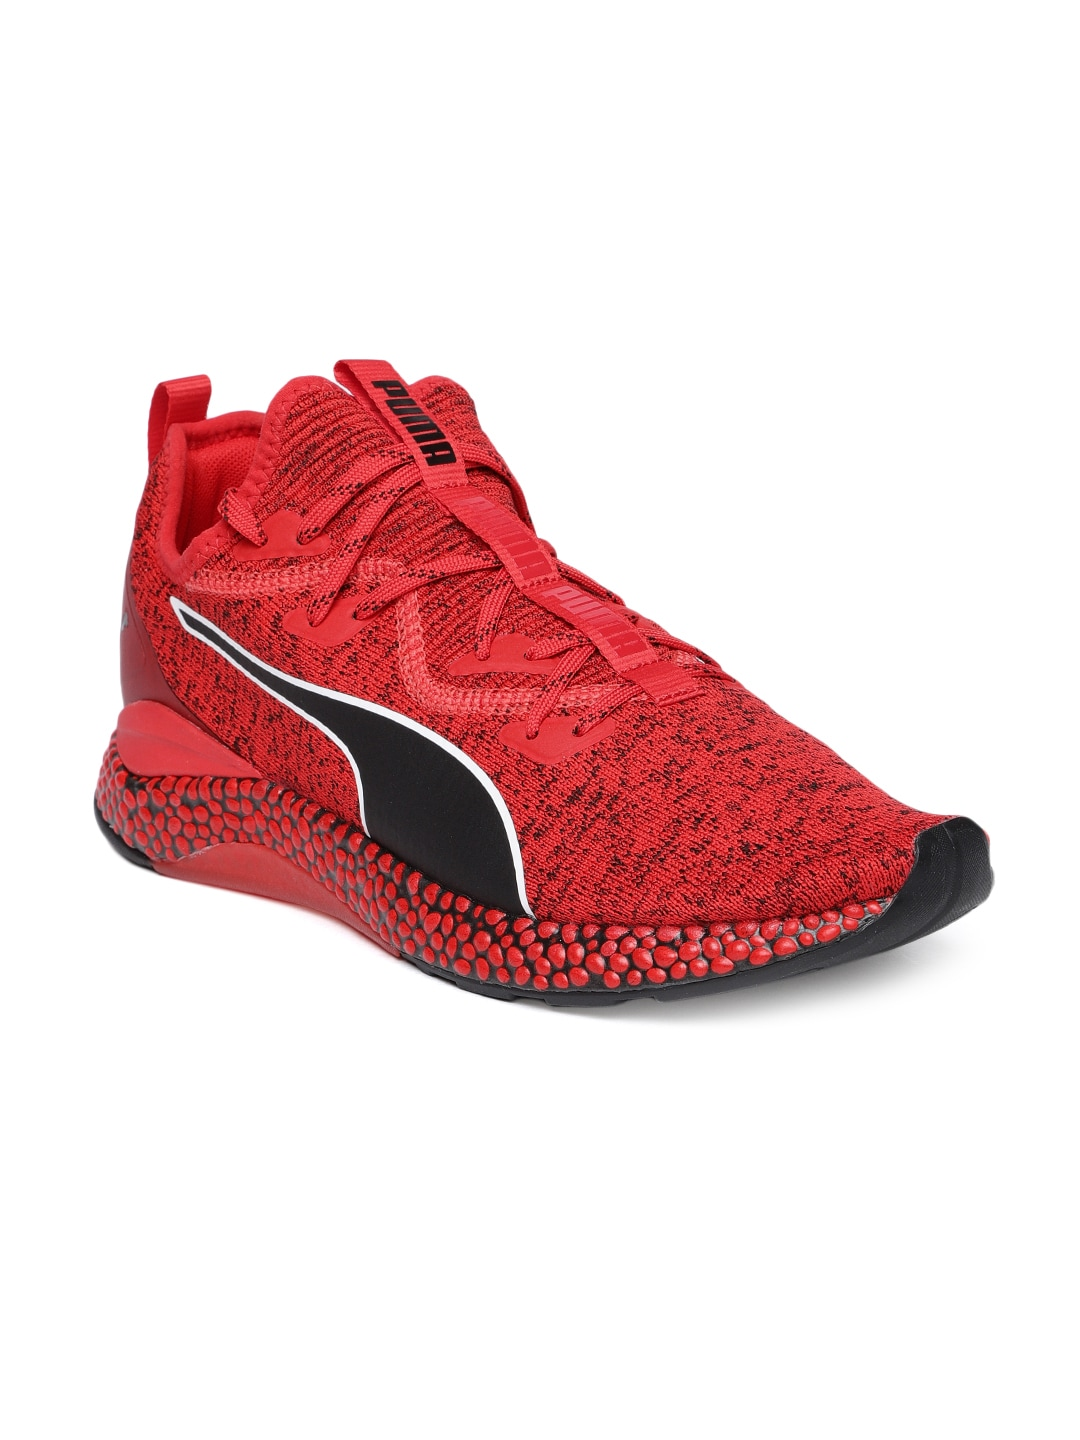 7c522368314c Puma Shoes - Buy Puma Shoes for Men   Women Online in India